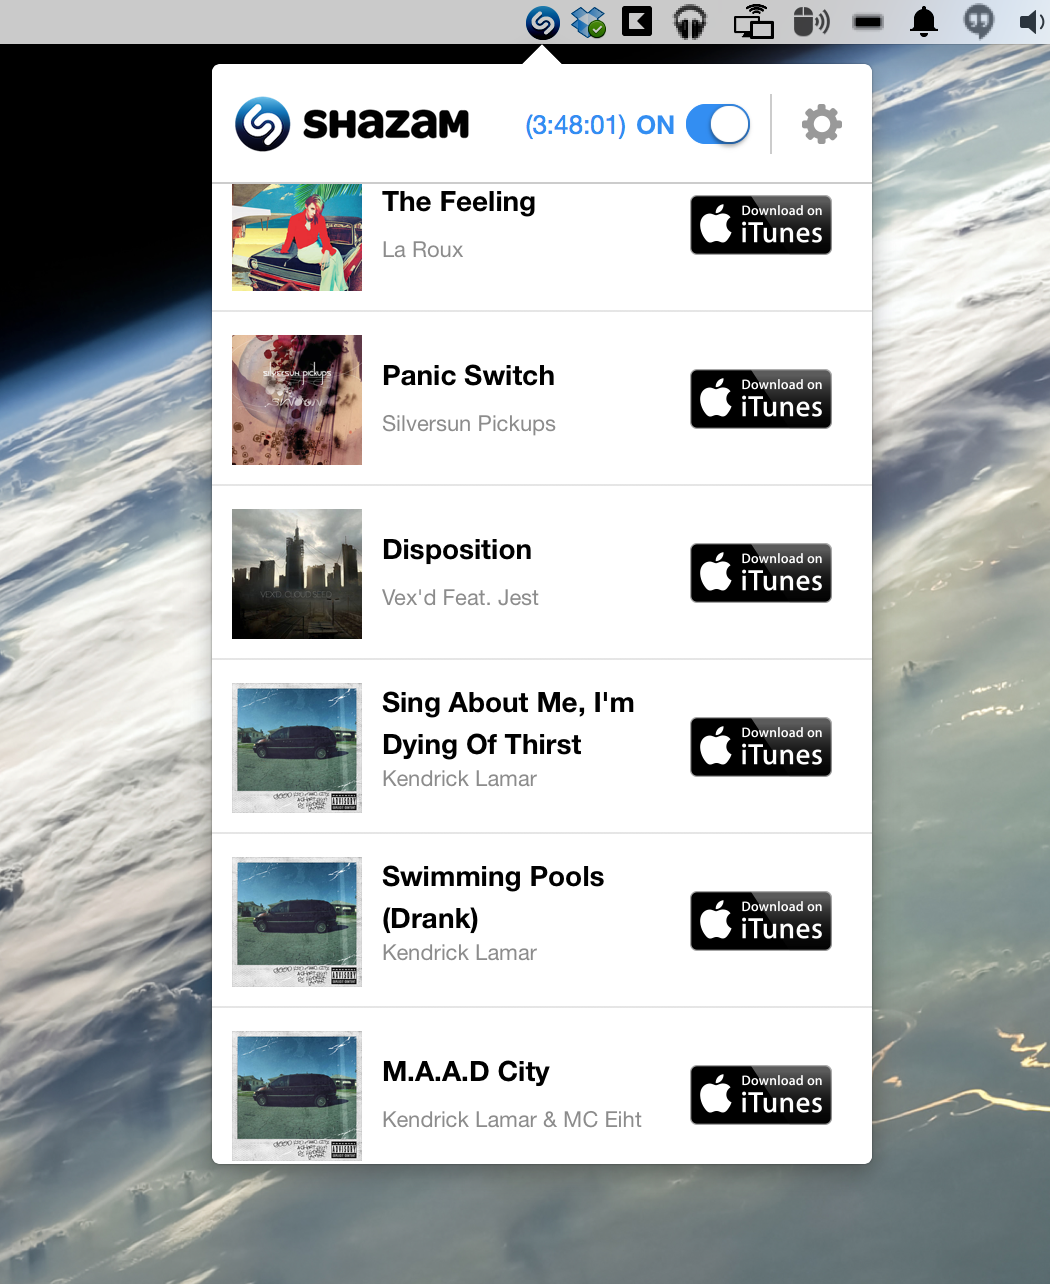 Shazam expands to Mac